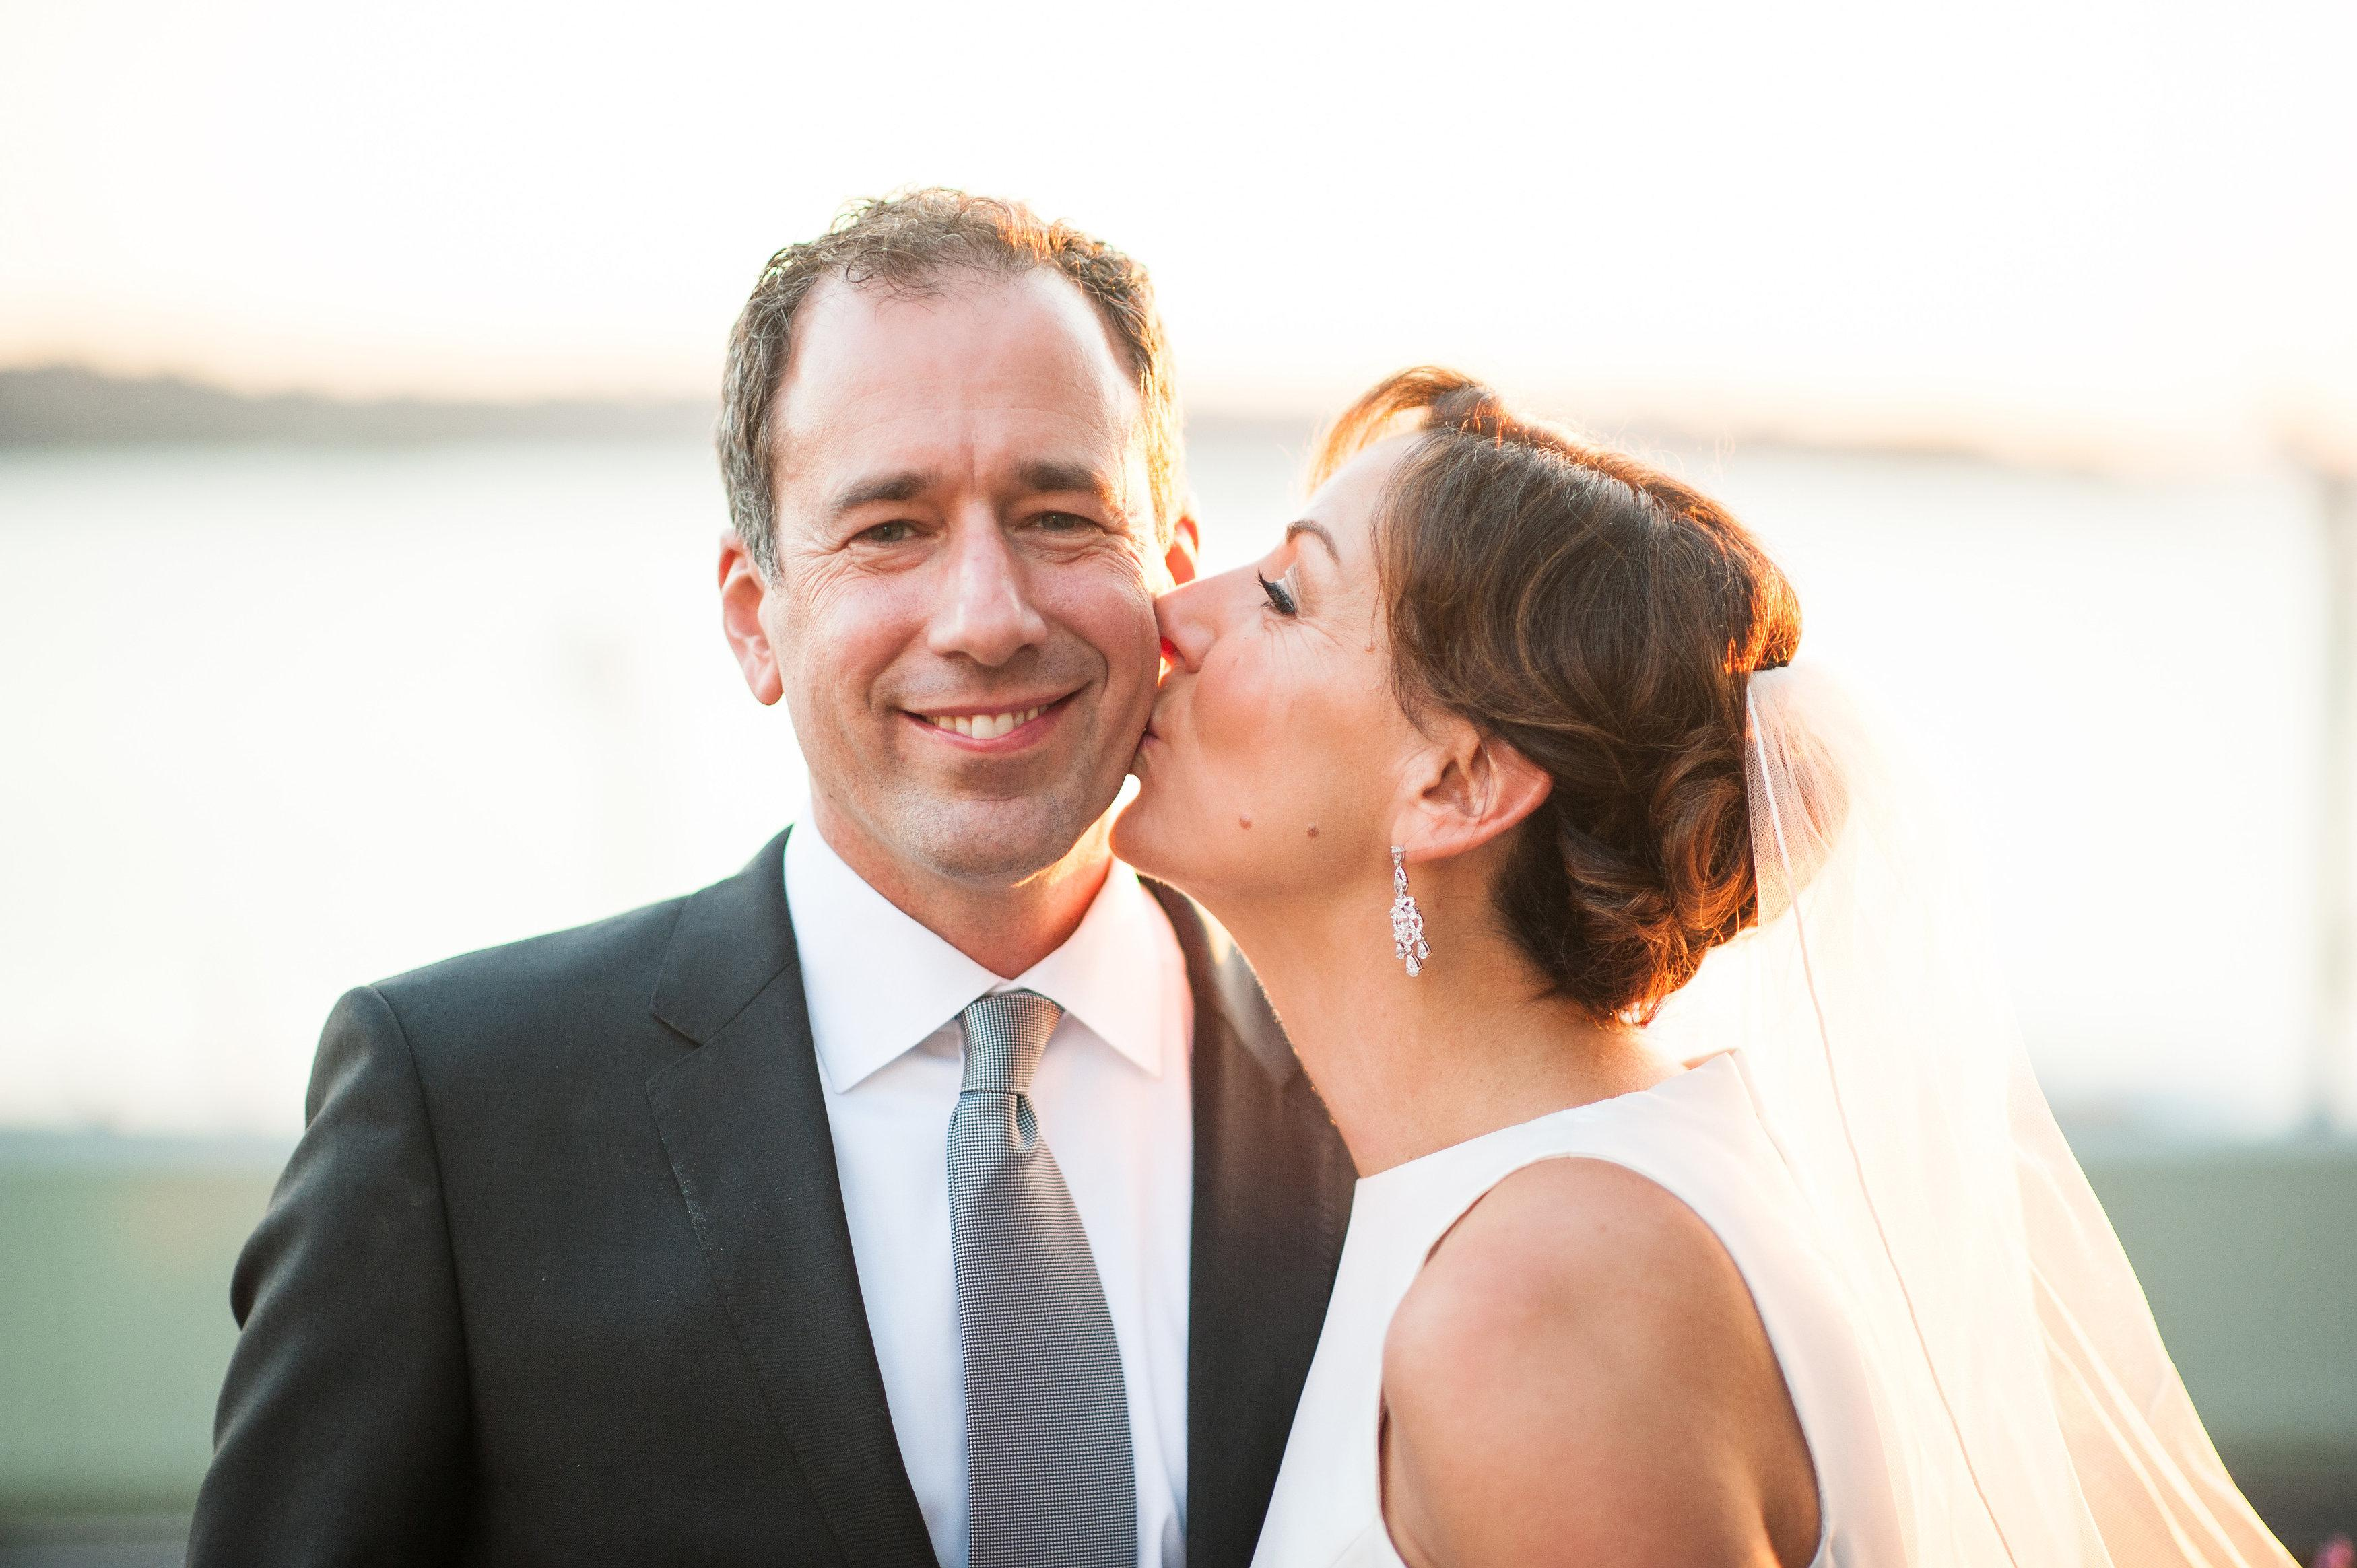 <p>Emelie and Dominik got married on October 5th, 2015 with the beautiful backdrop of Beecher's Loft in Pike Place Market with their reception at Axis in Pioneer Square. The couple and Barbie Hull strolled around Pike Place Market to capture the beautiful images you are about to indulge yourself in! (Image: Barbie Hull Photography)</p>